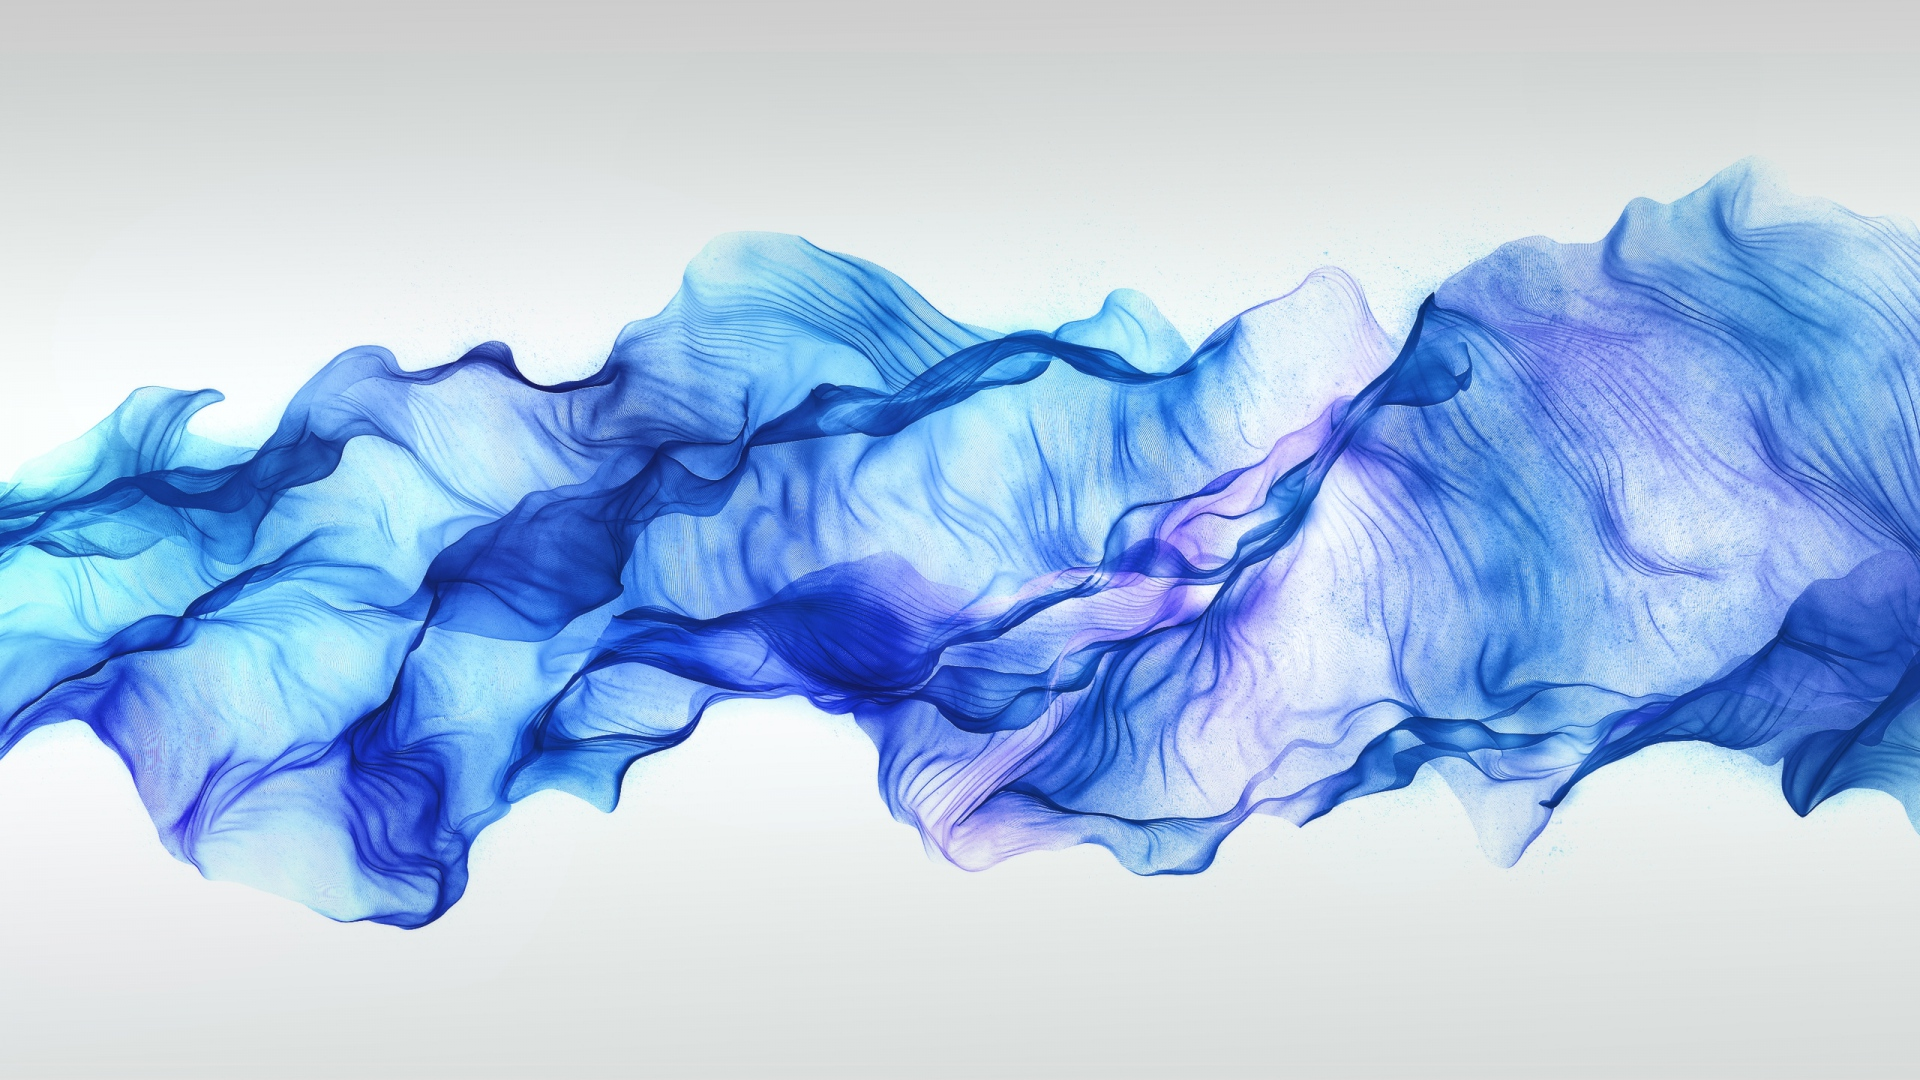 smoke paint sheet form wallpapers 19201080 hd wallpapers high 1920x1080